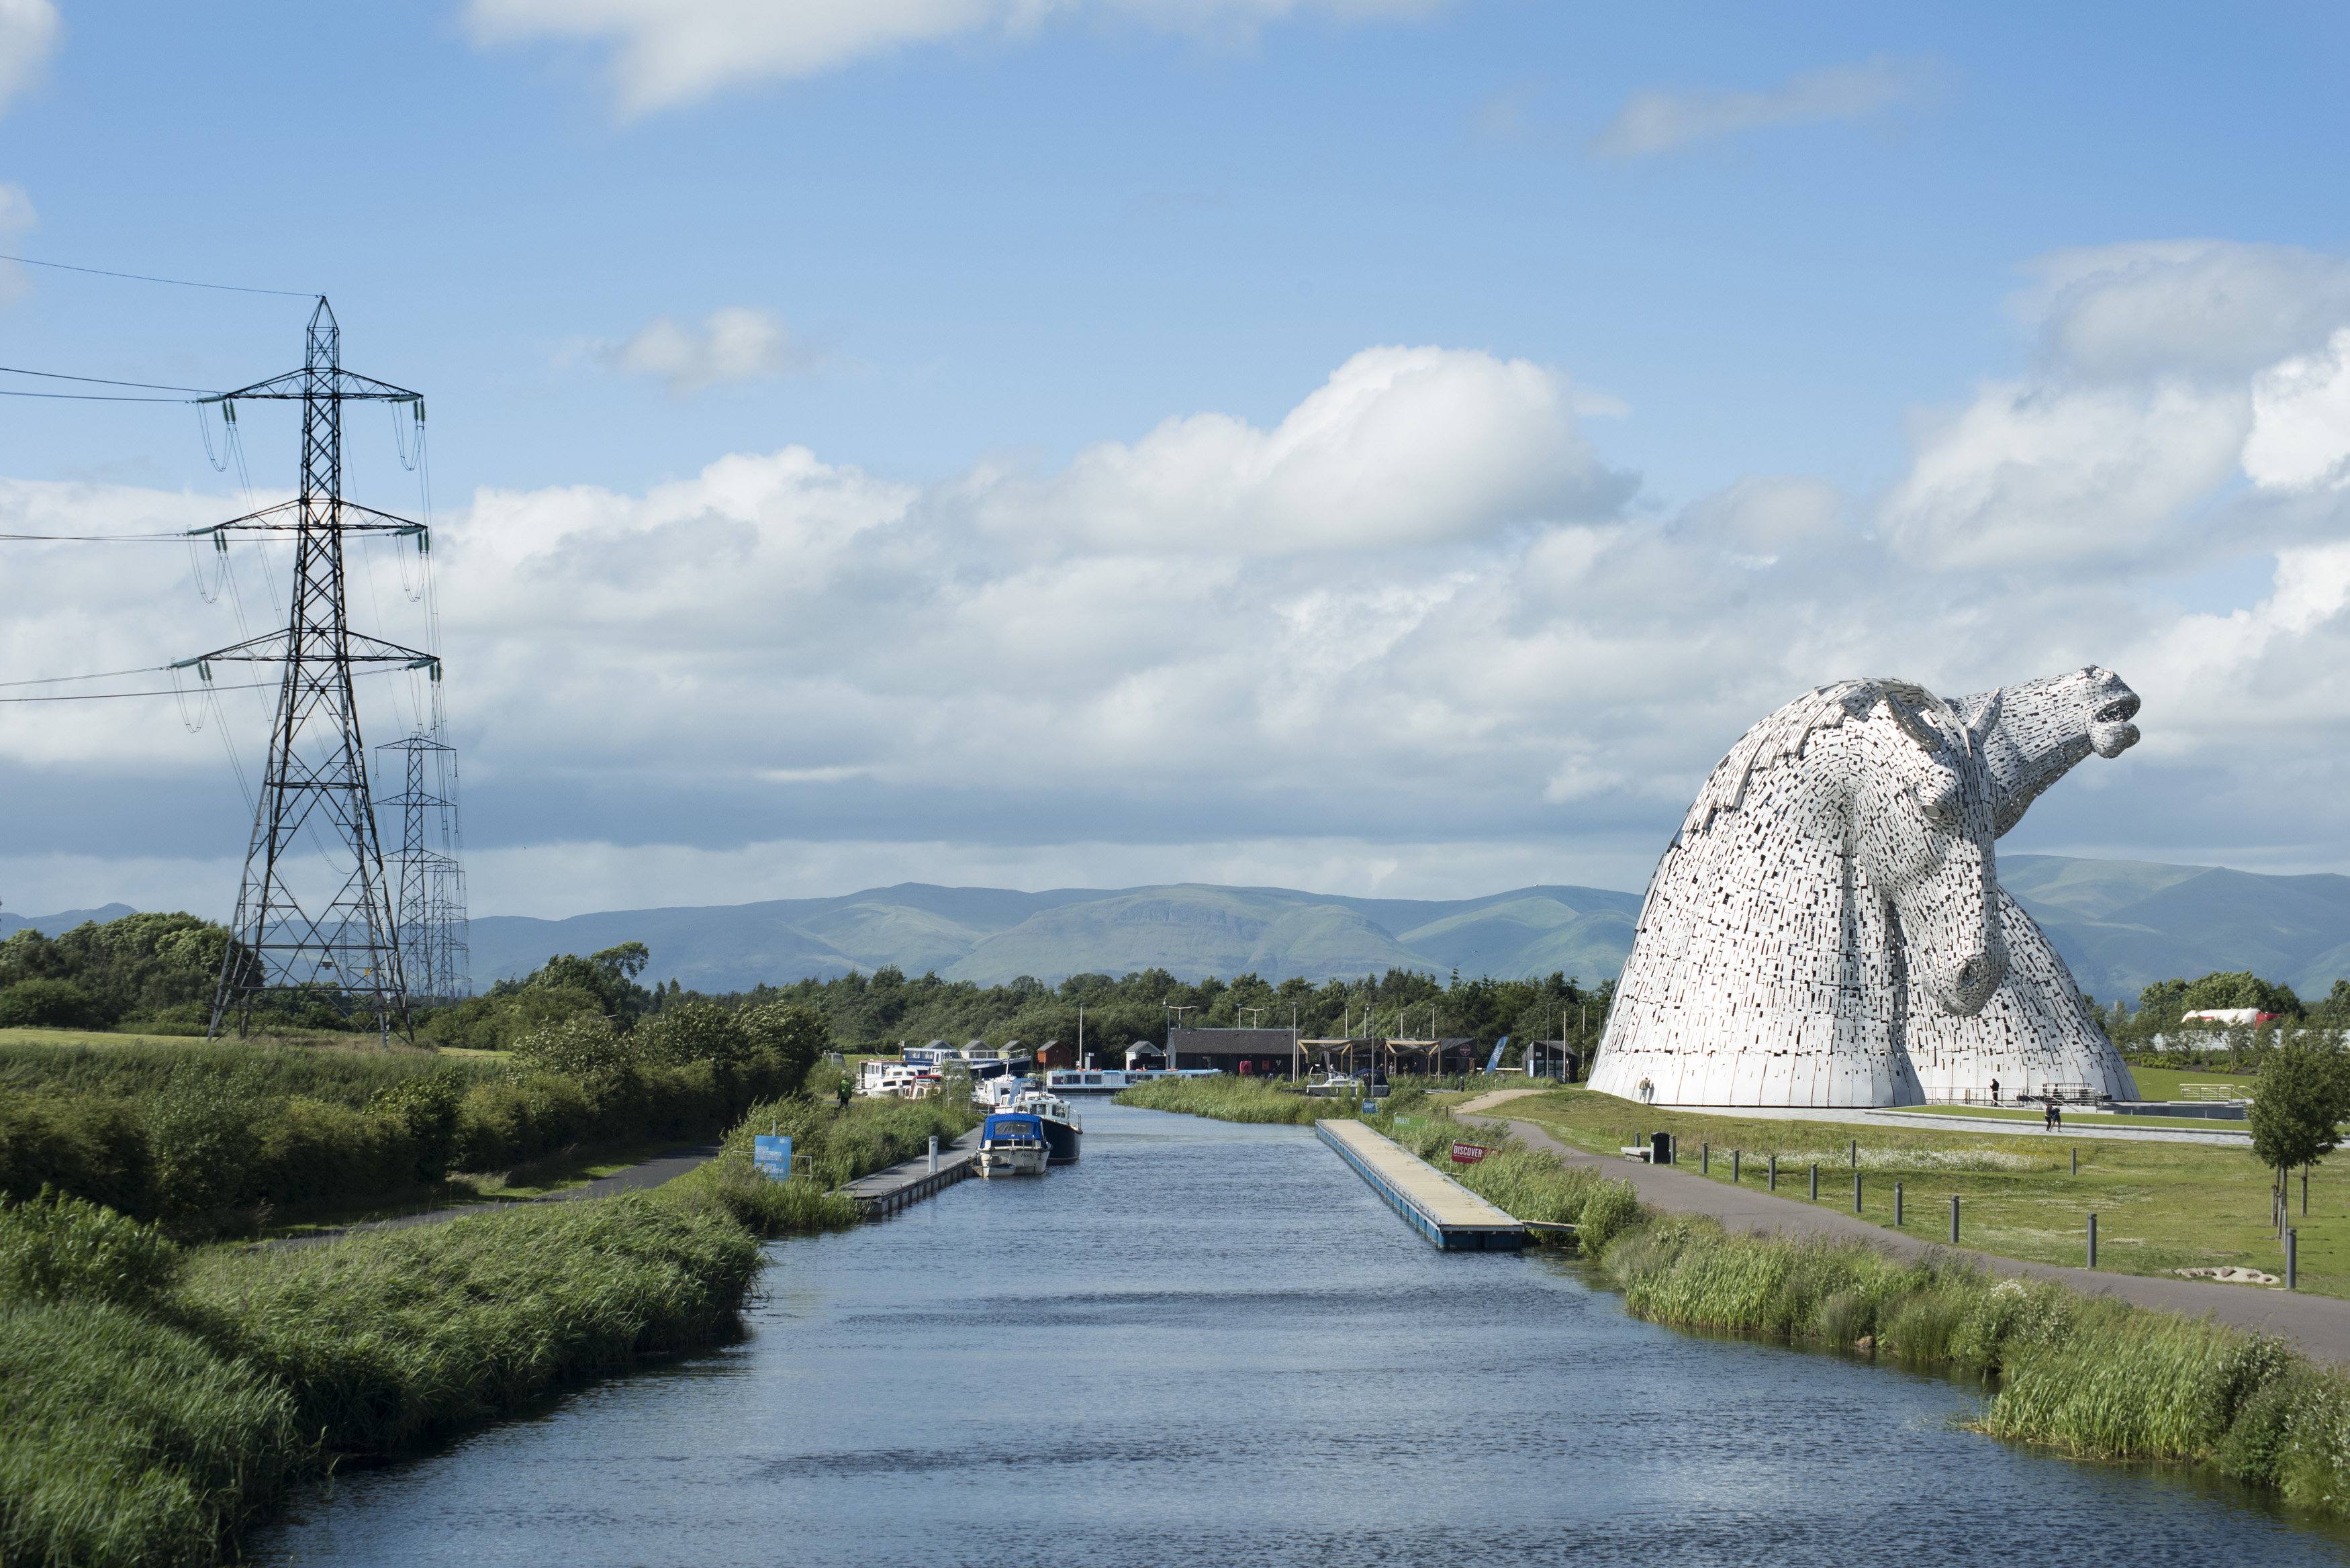 Scenic view of Falkirk Scotland with kelpies sculpture of horse heads on right side of the canal